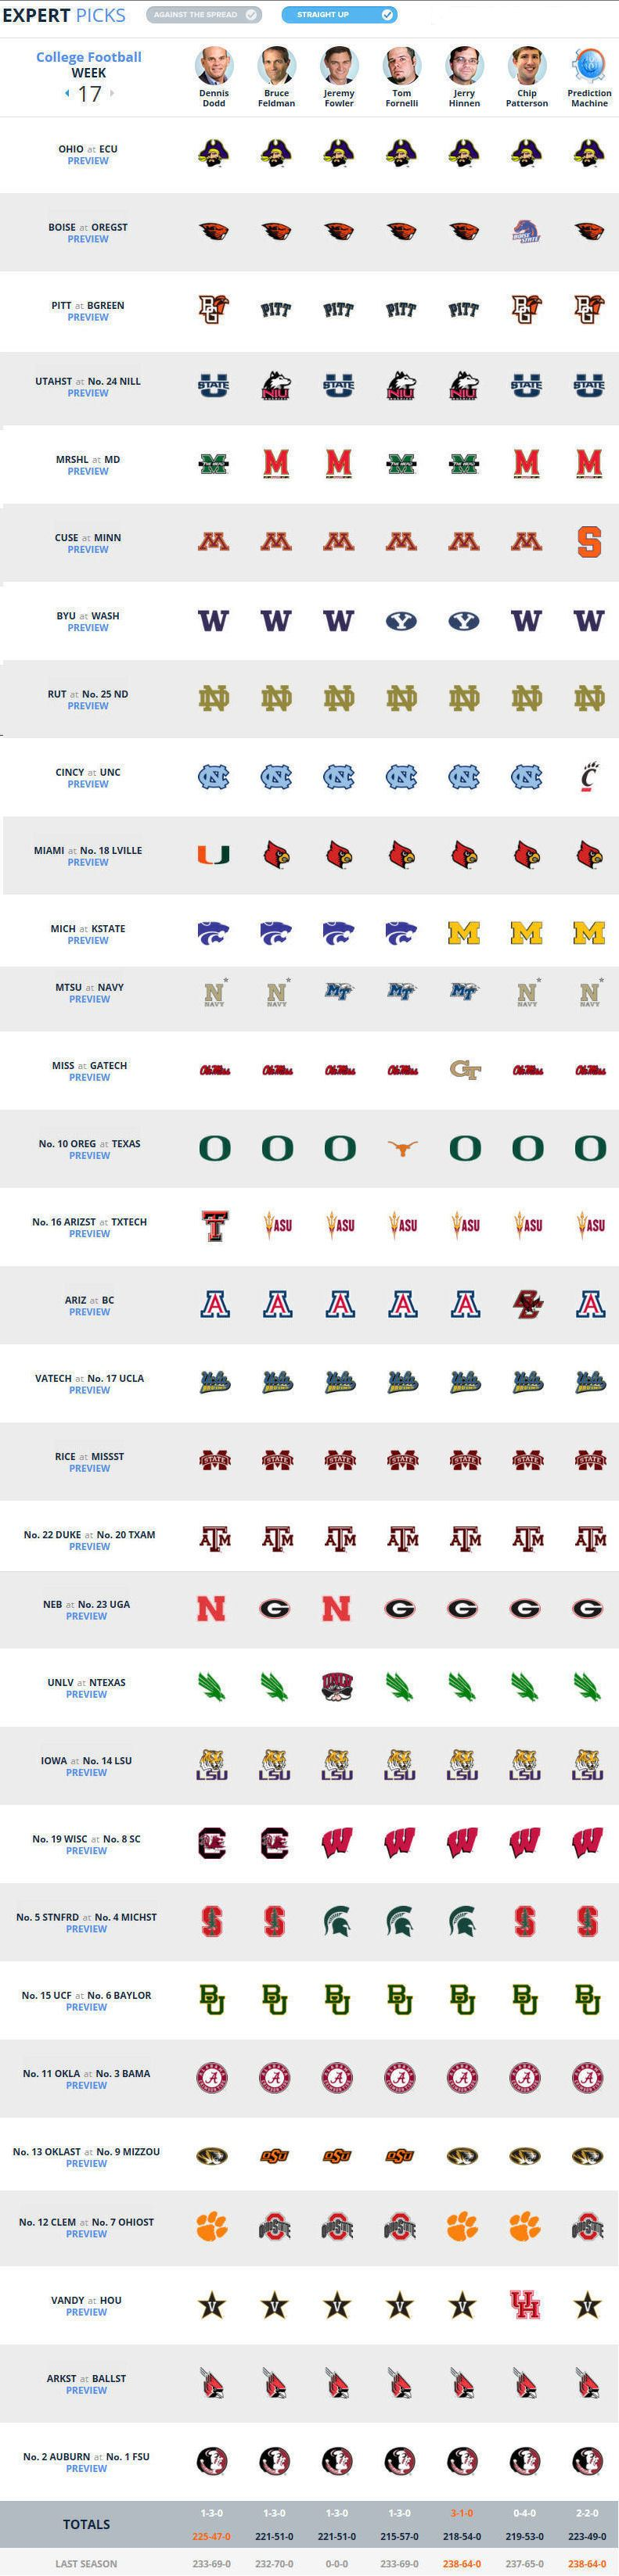 bowl projections cbs